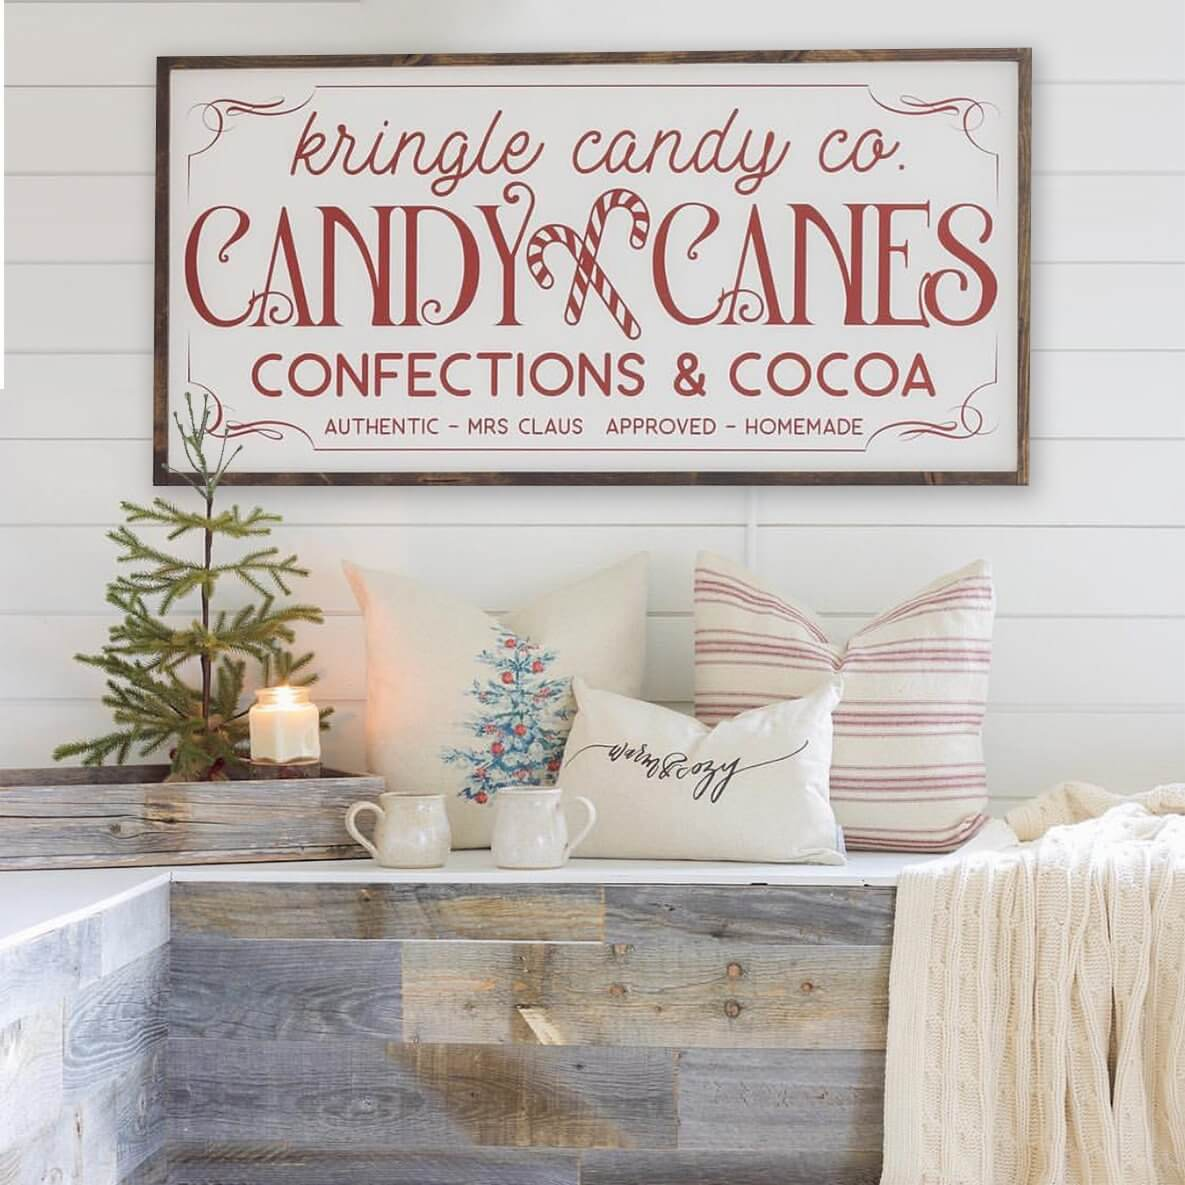 Vintage-styled Kringle Candy Co. Sign